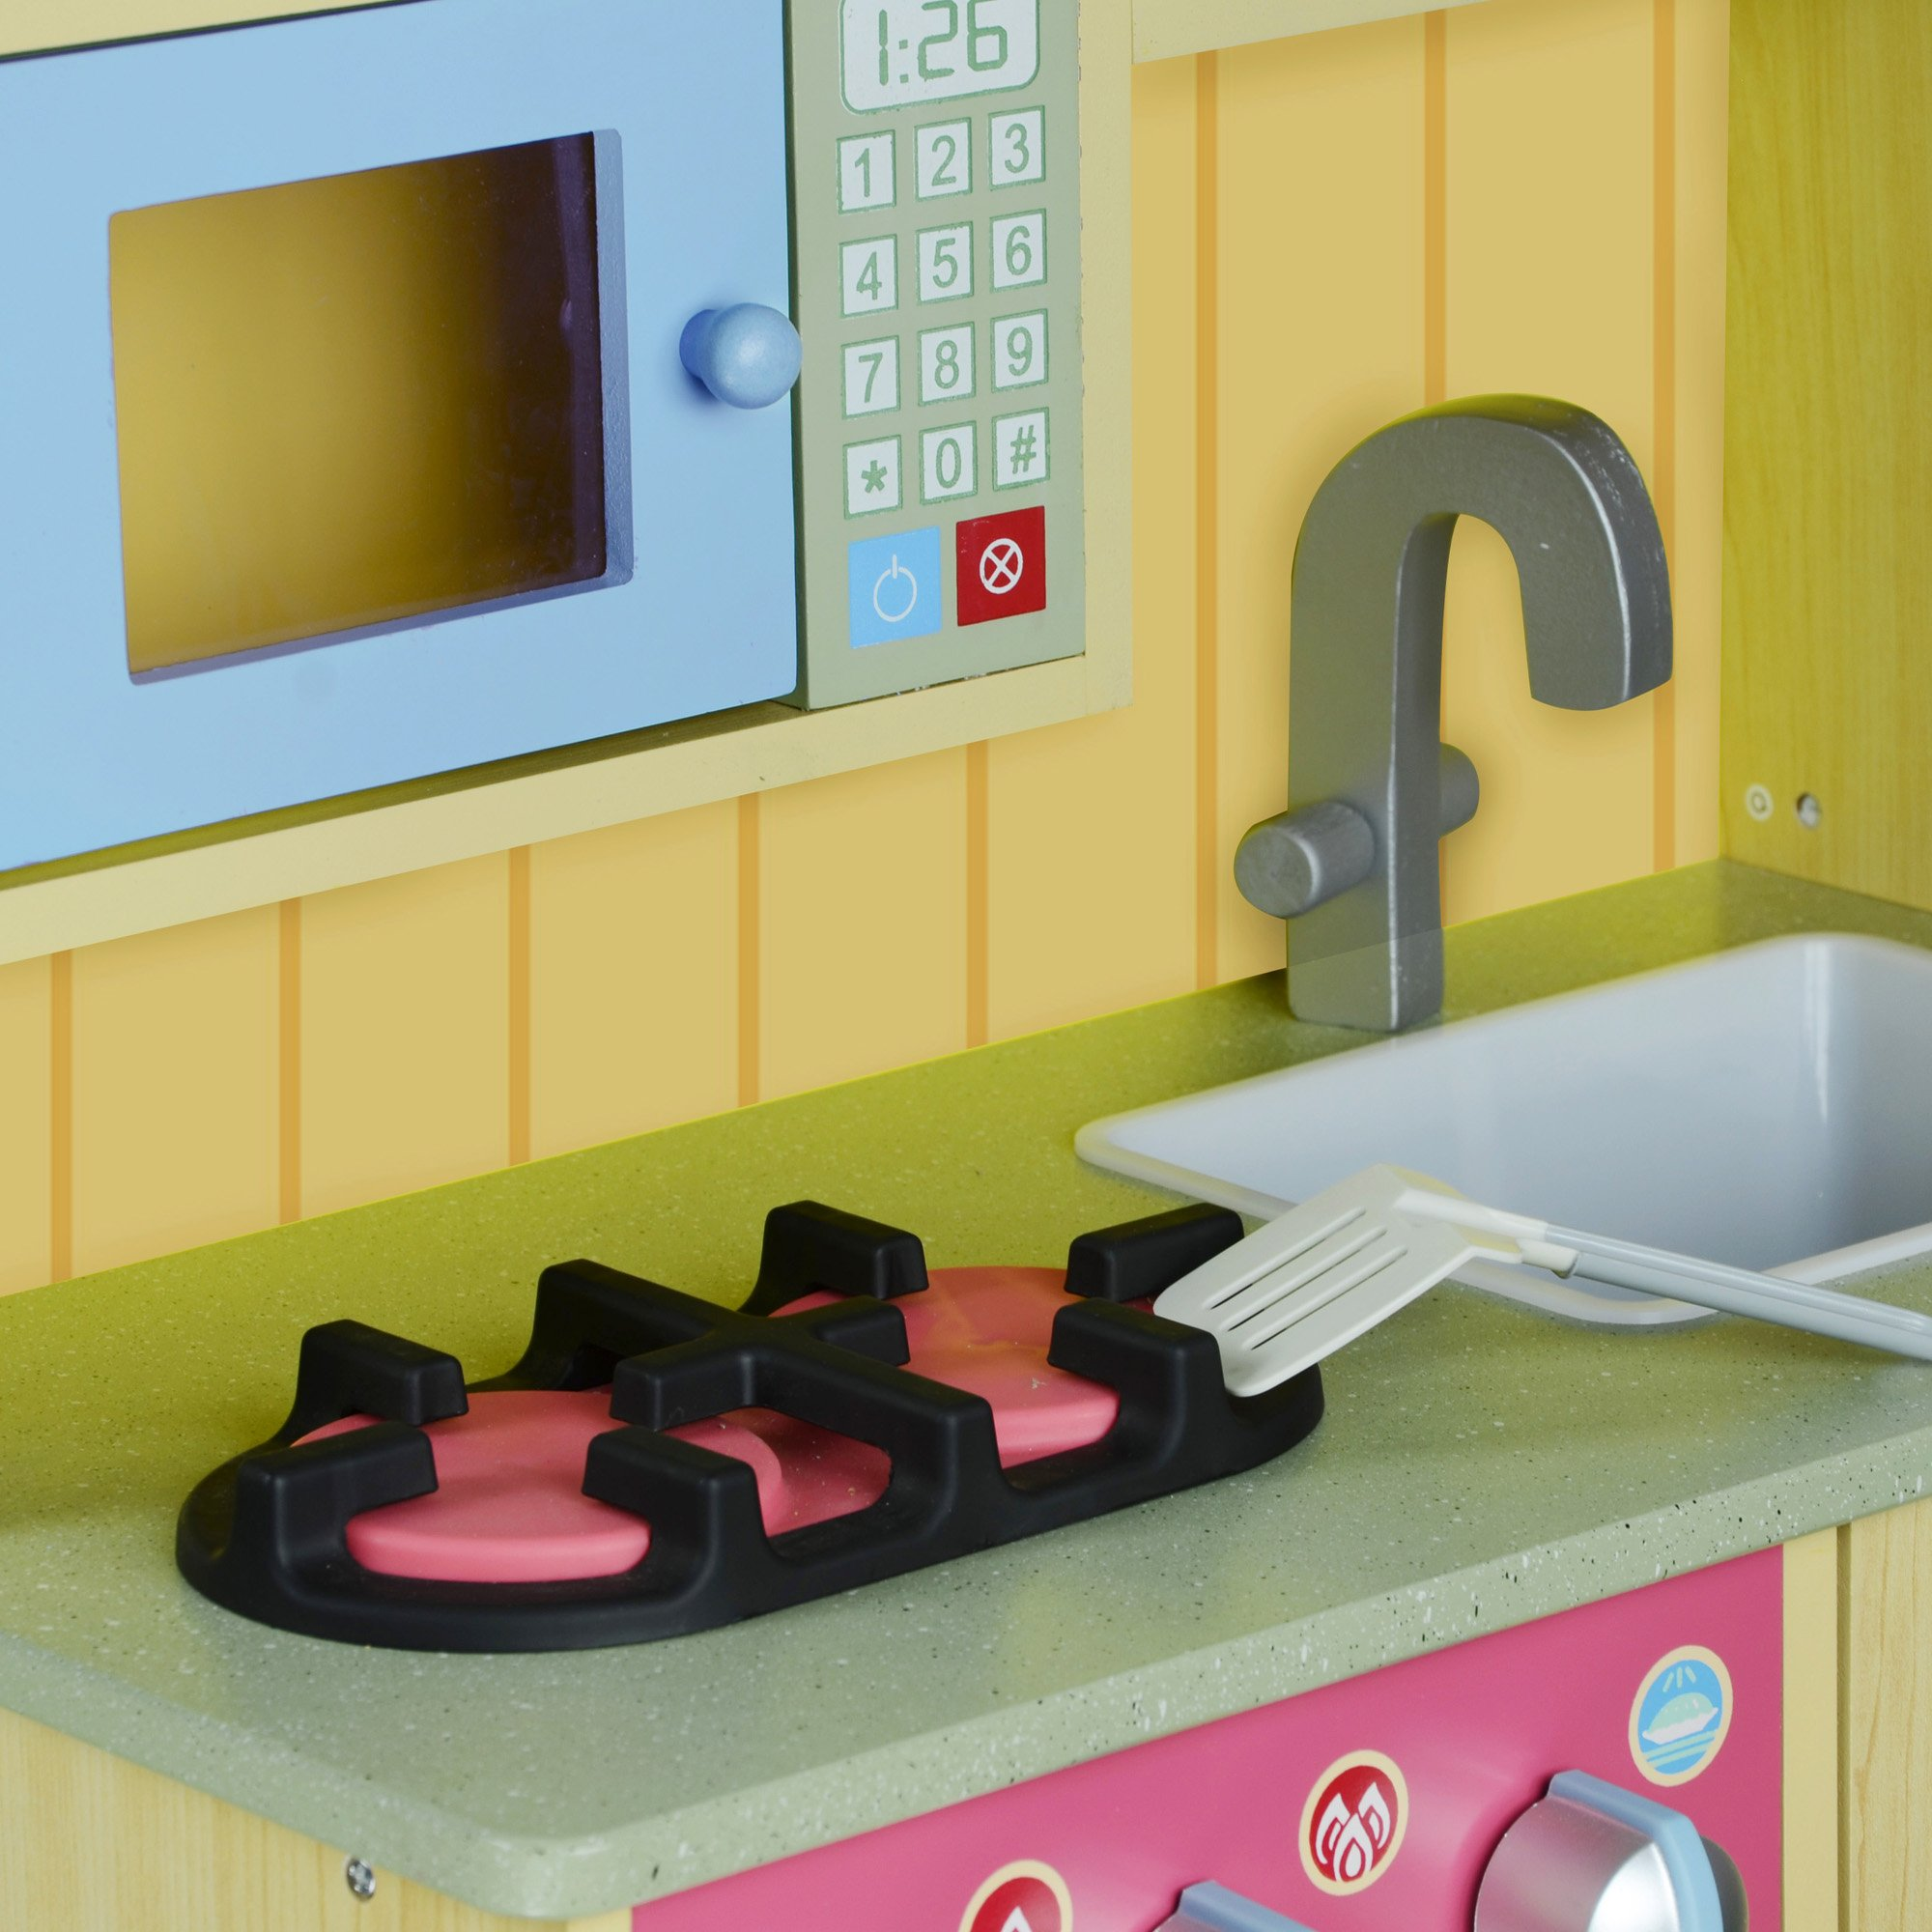 Teamson Kids - Little Chef Florence Classic Kids Play Kitchen | Toddler Pretend Play Set with Accessories - Wood Grain by Teamson Kids (Image #7)